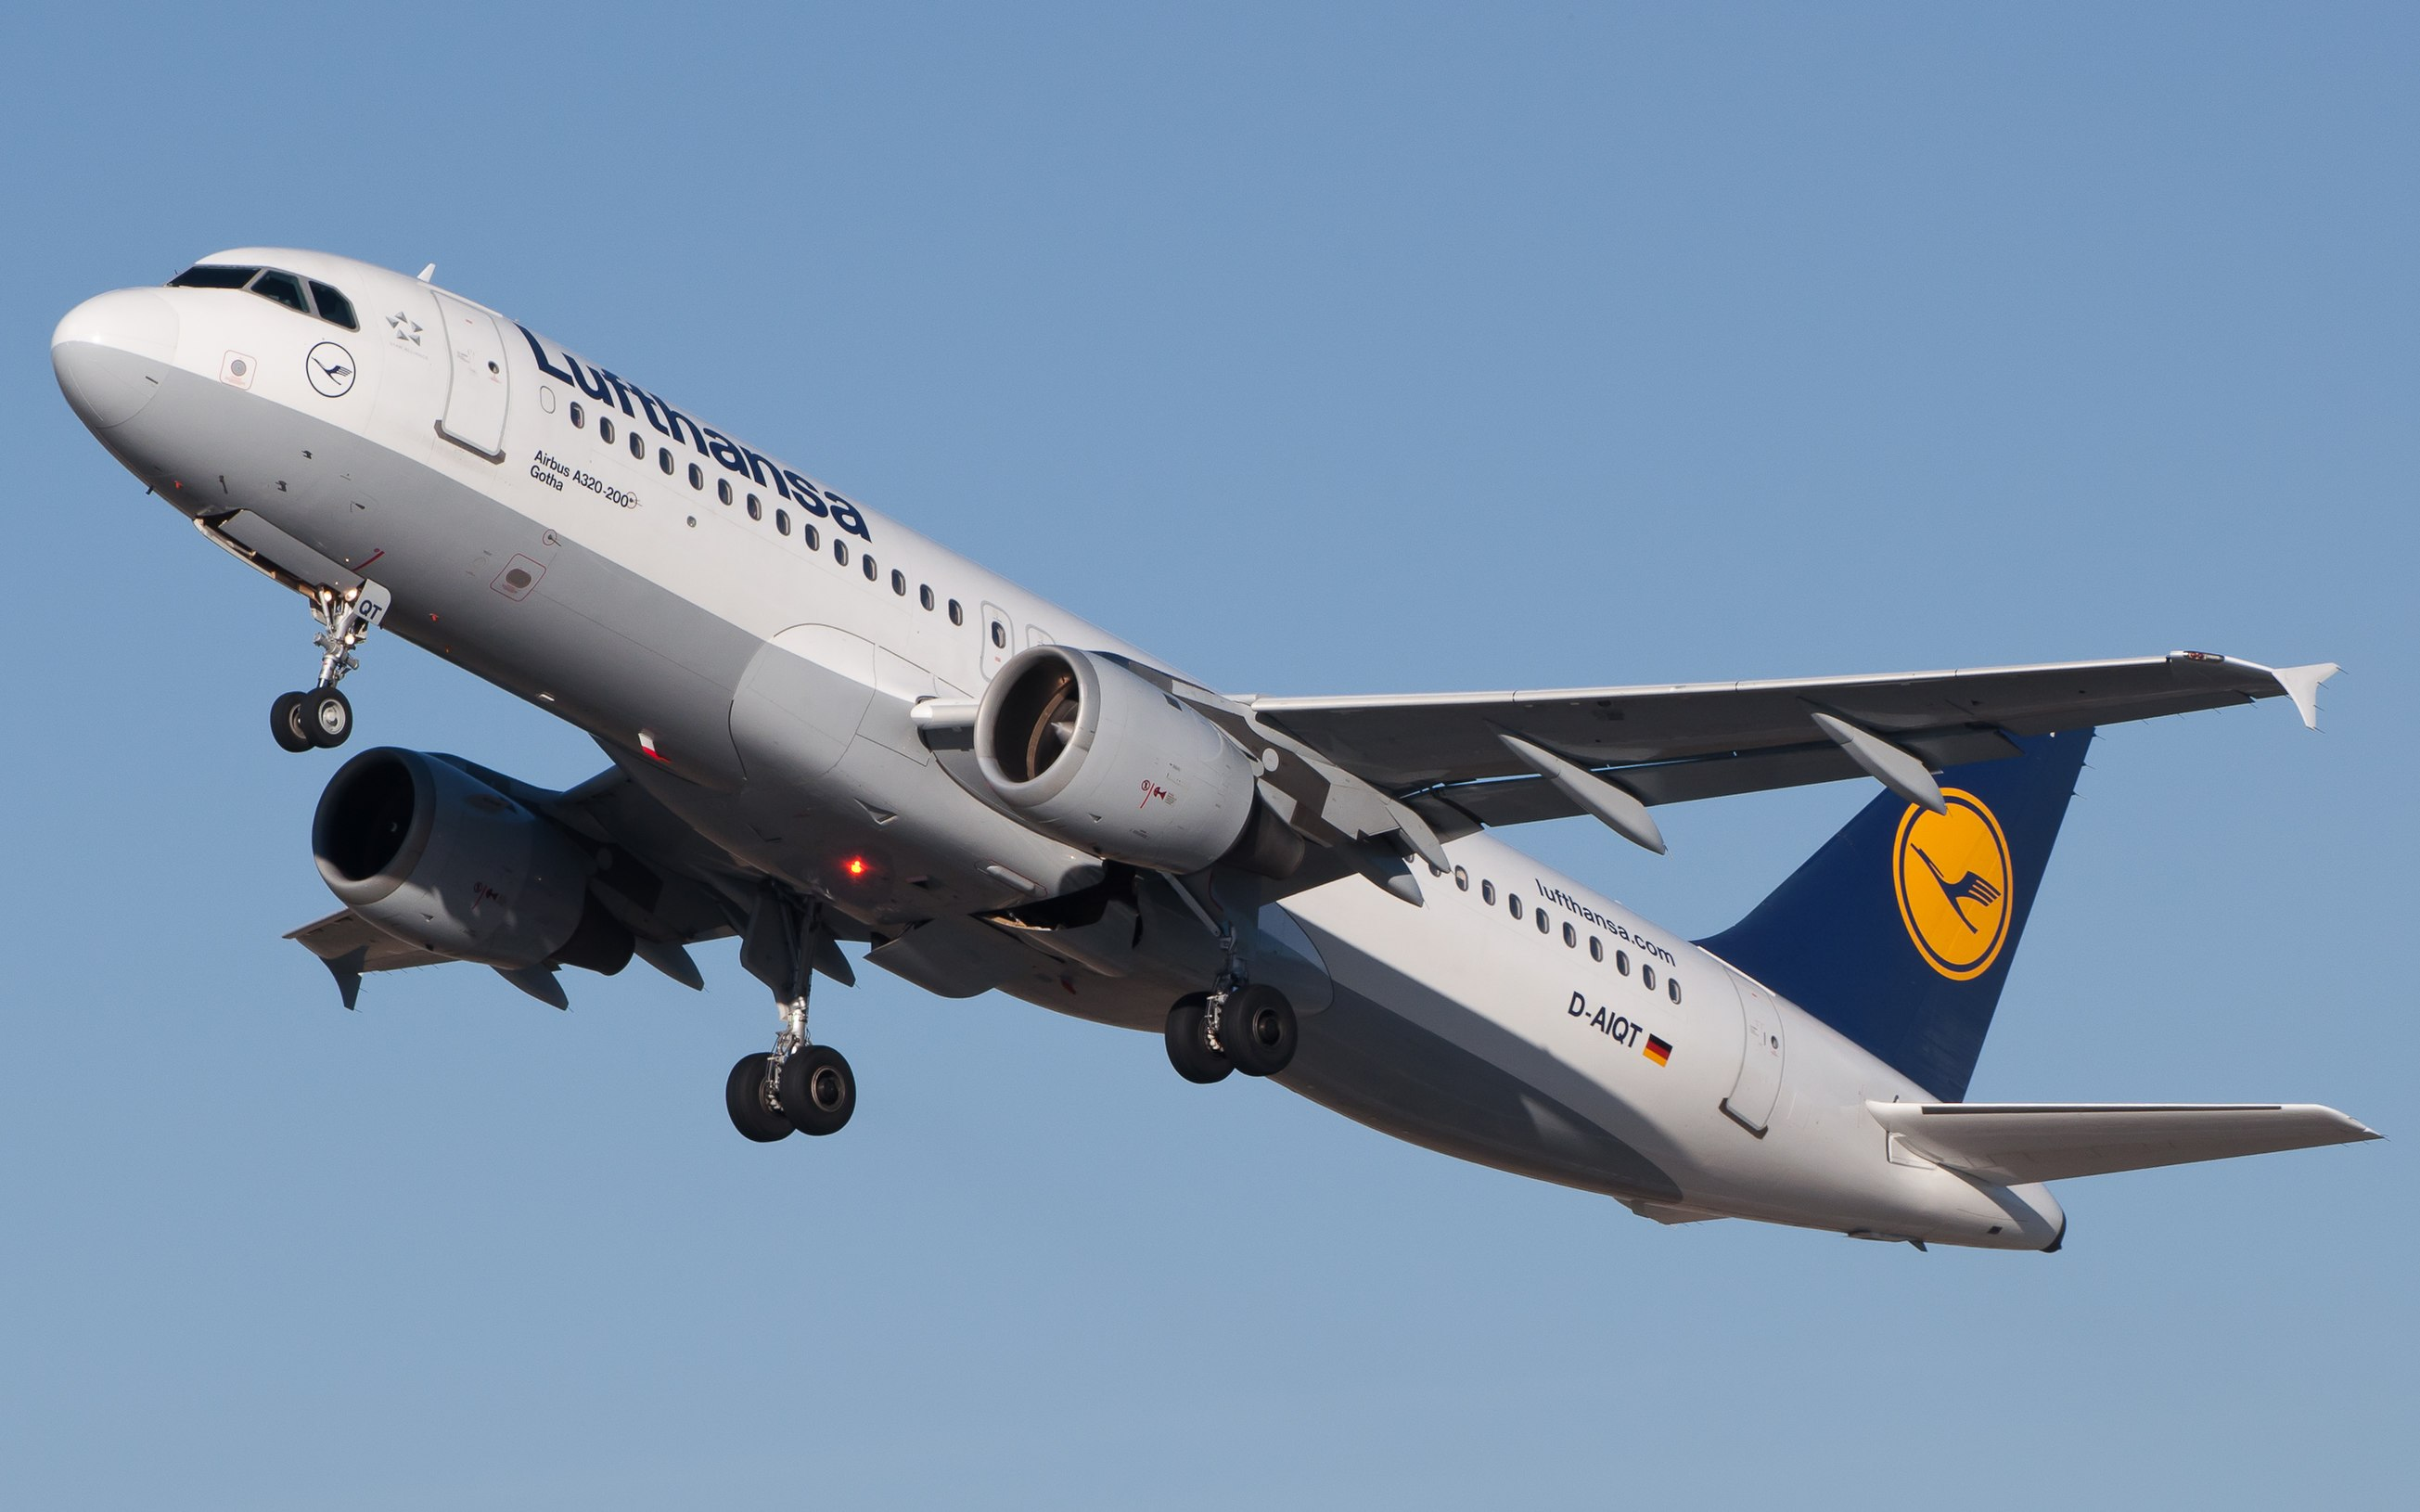 Airbus A320 family - The complete information and online